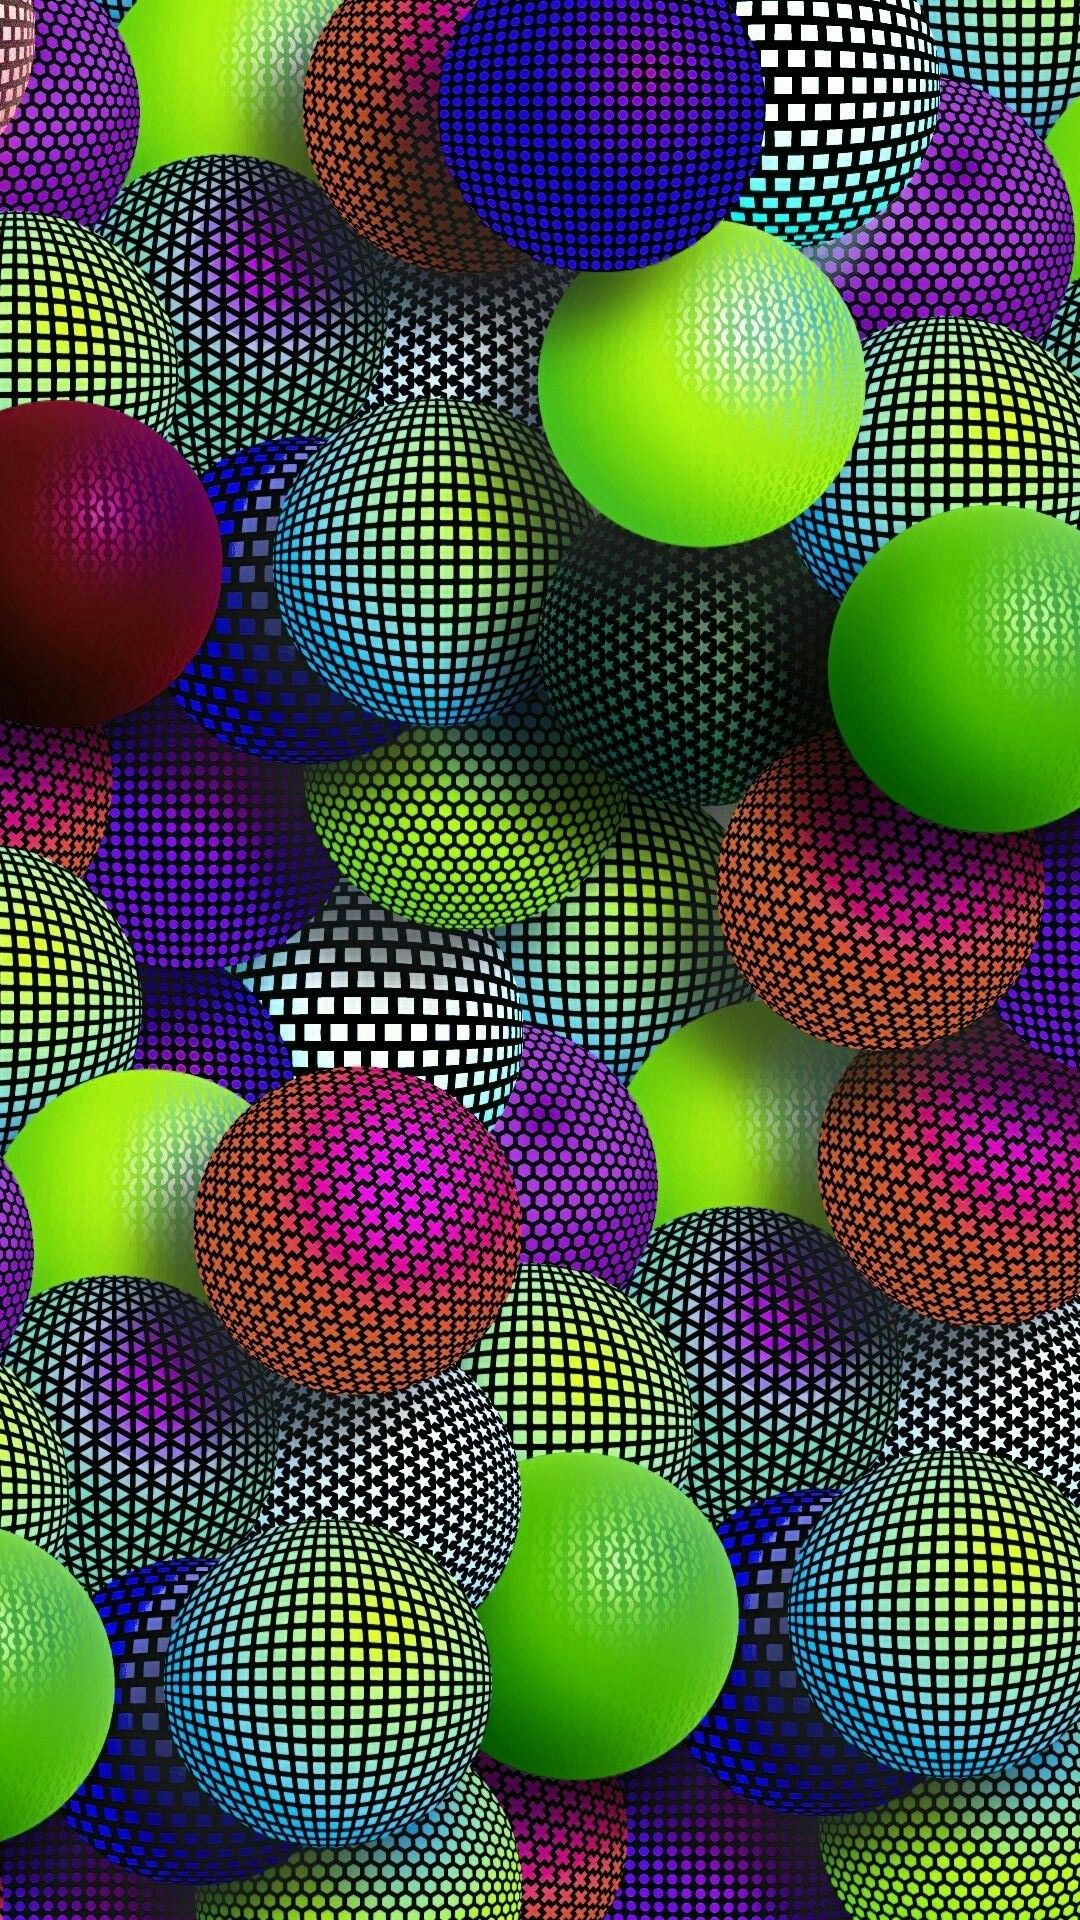 Zedge Full Hd Wallpaper Colourful Wallpaper For Samsung Colorful Wallpaper Uhd